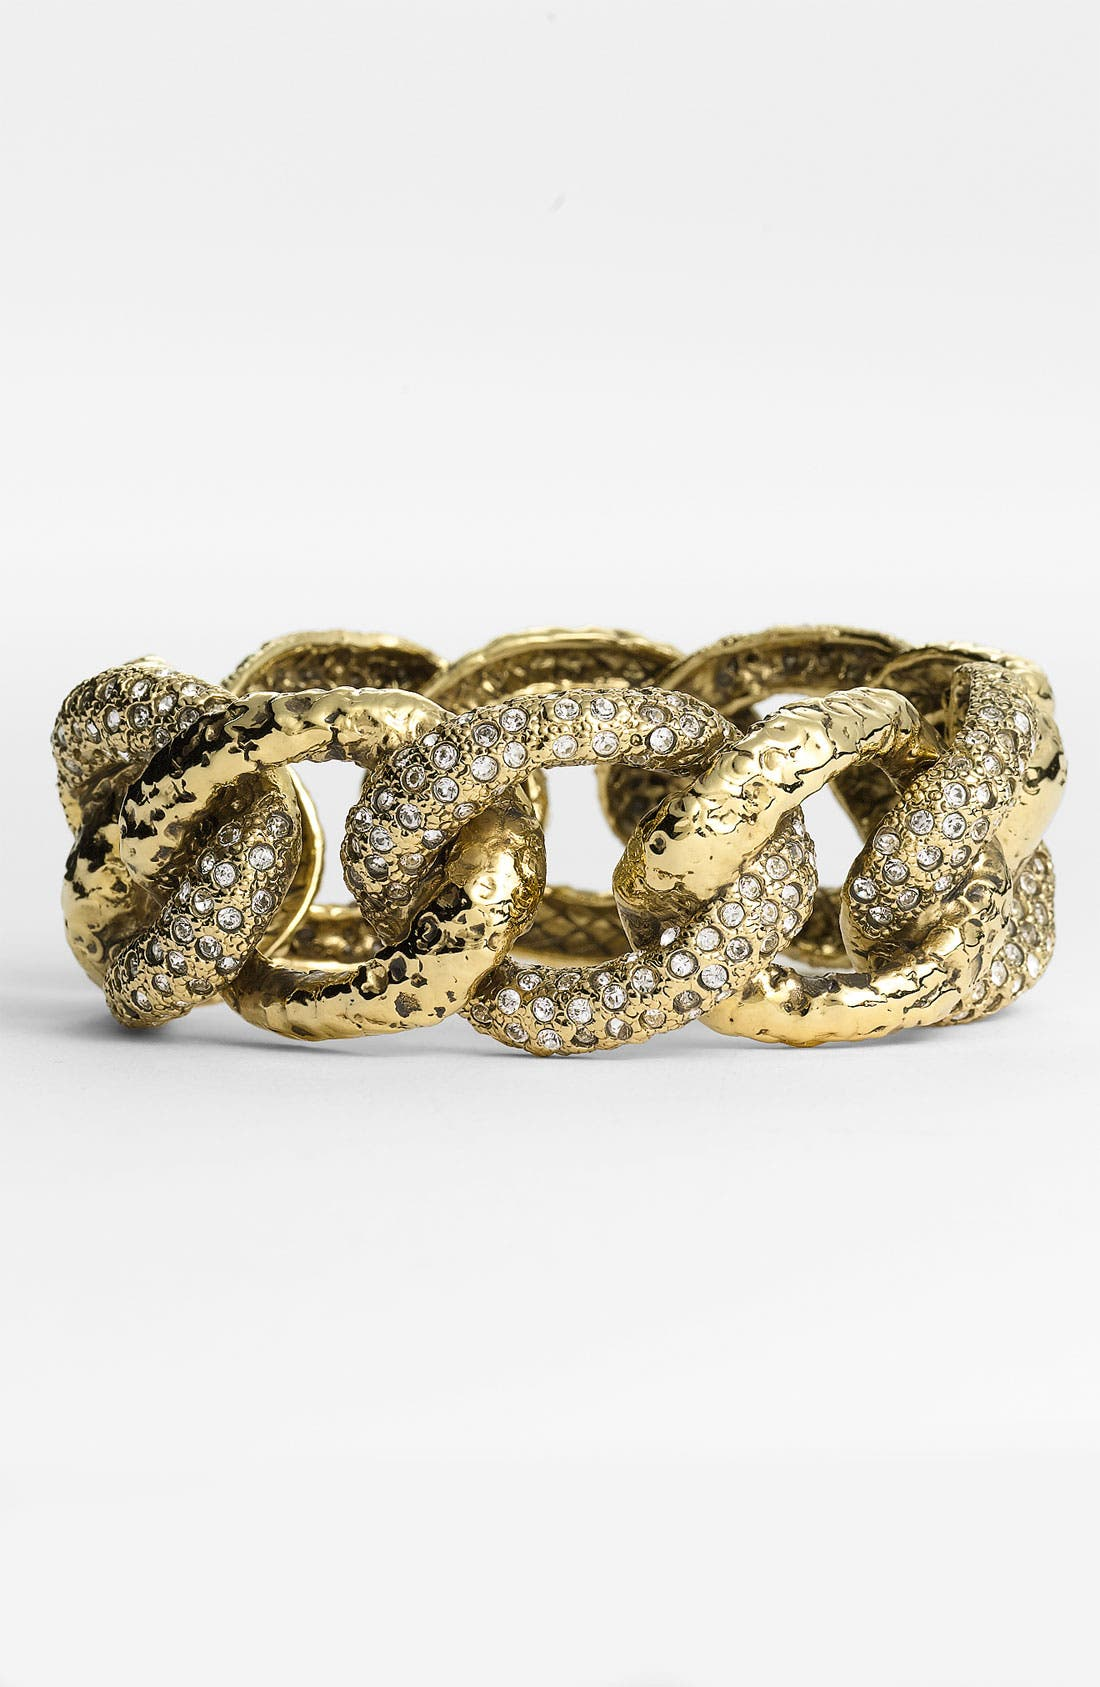 Main Image - St. John Collection Antique Gold & Crystal Cuff